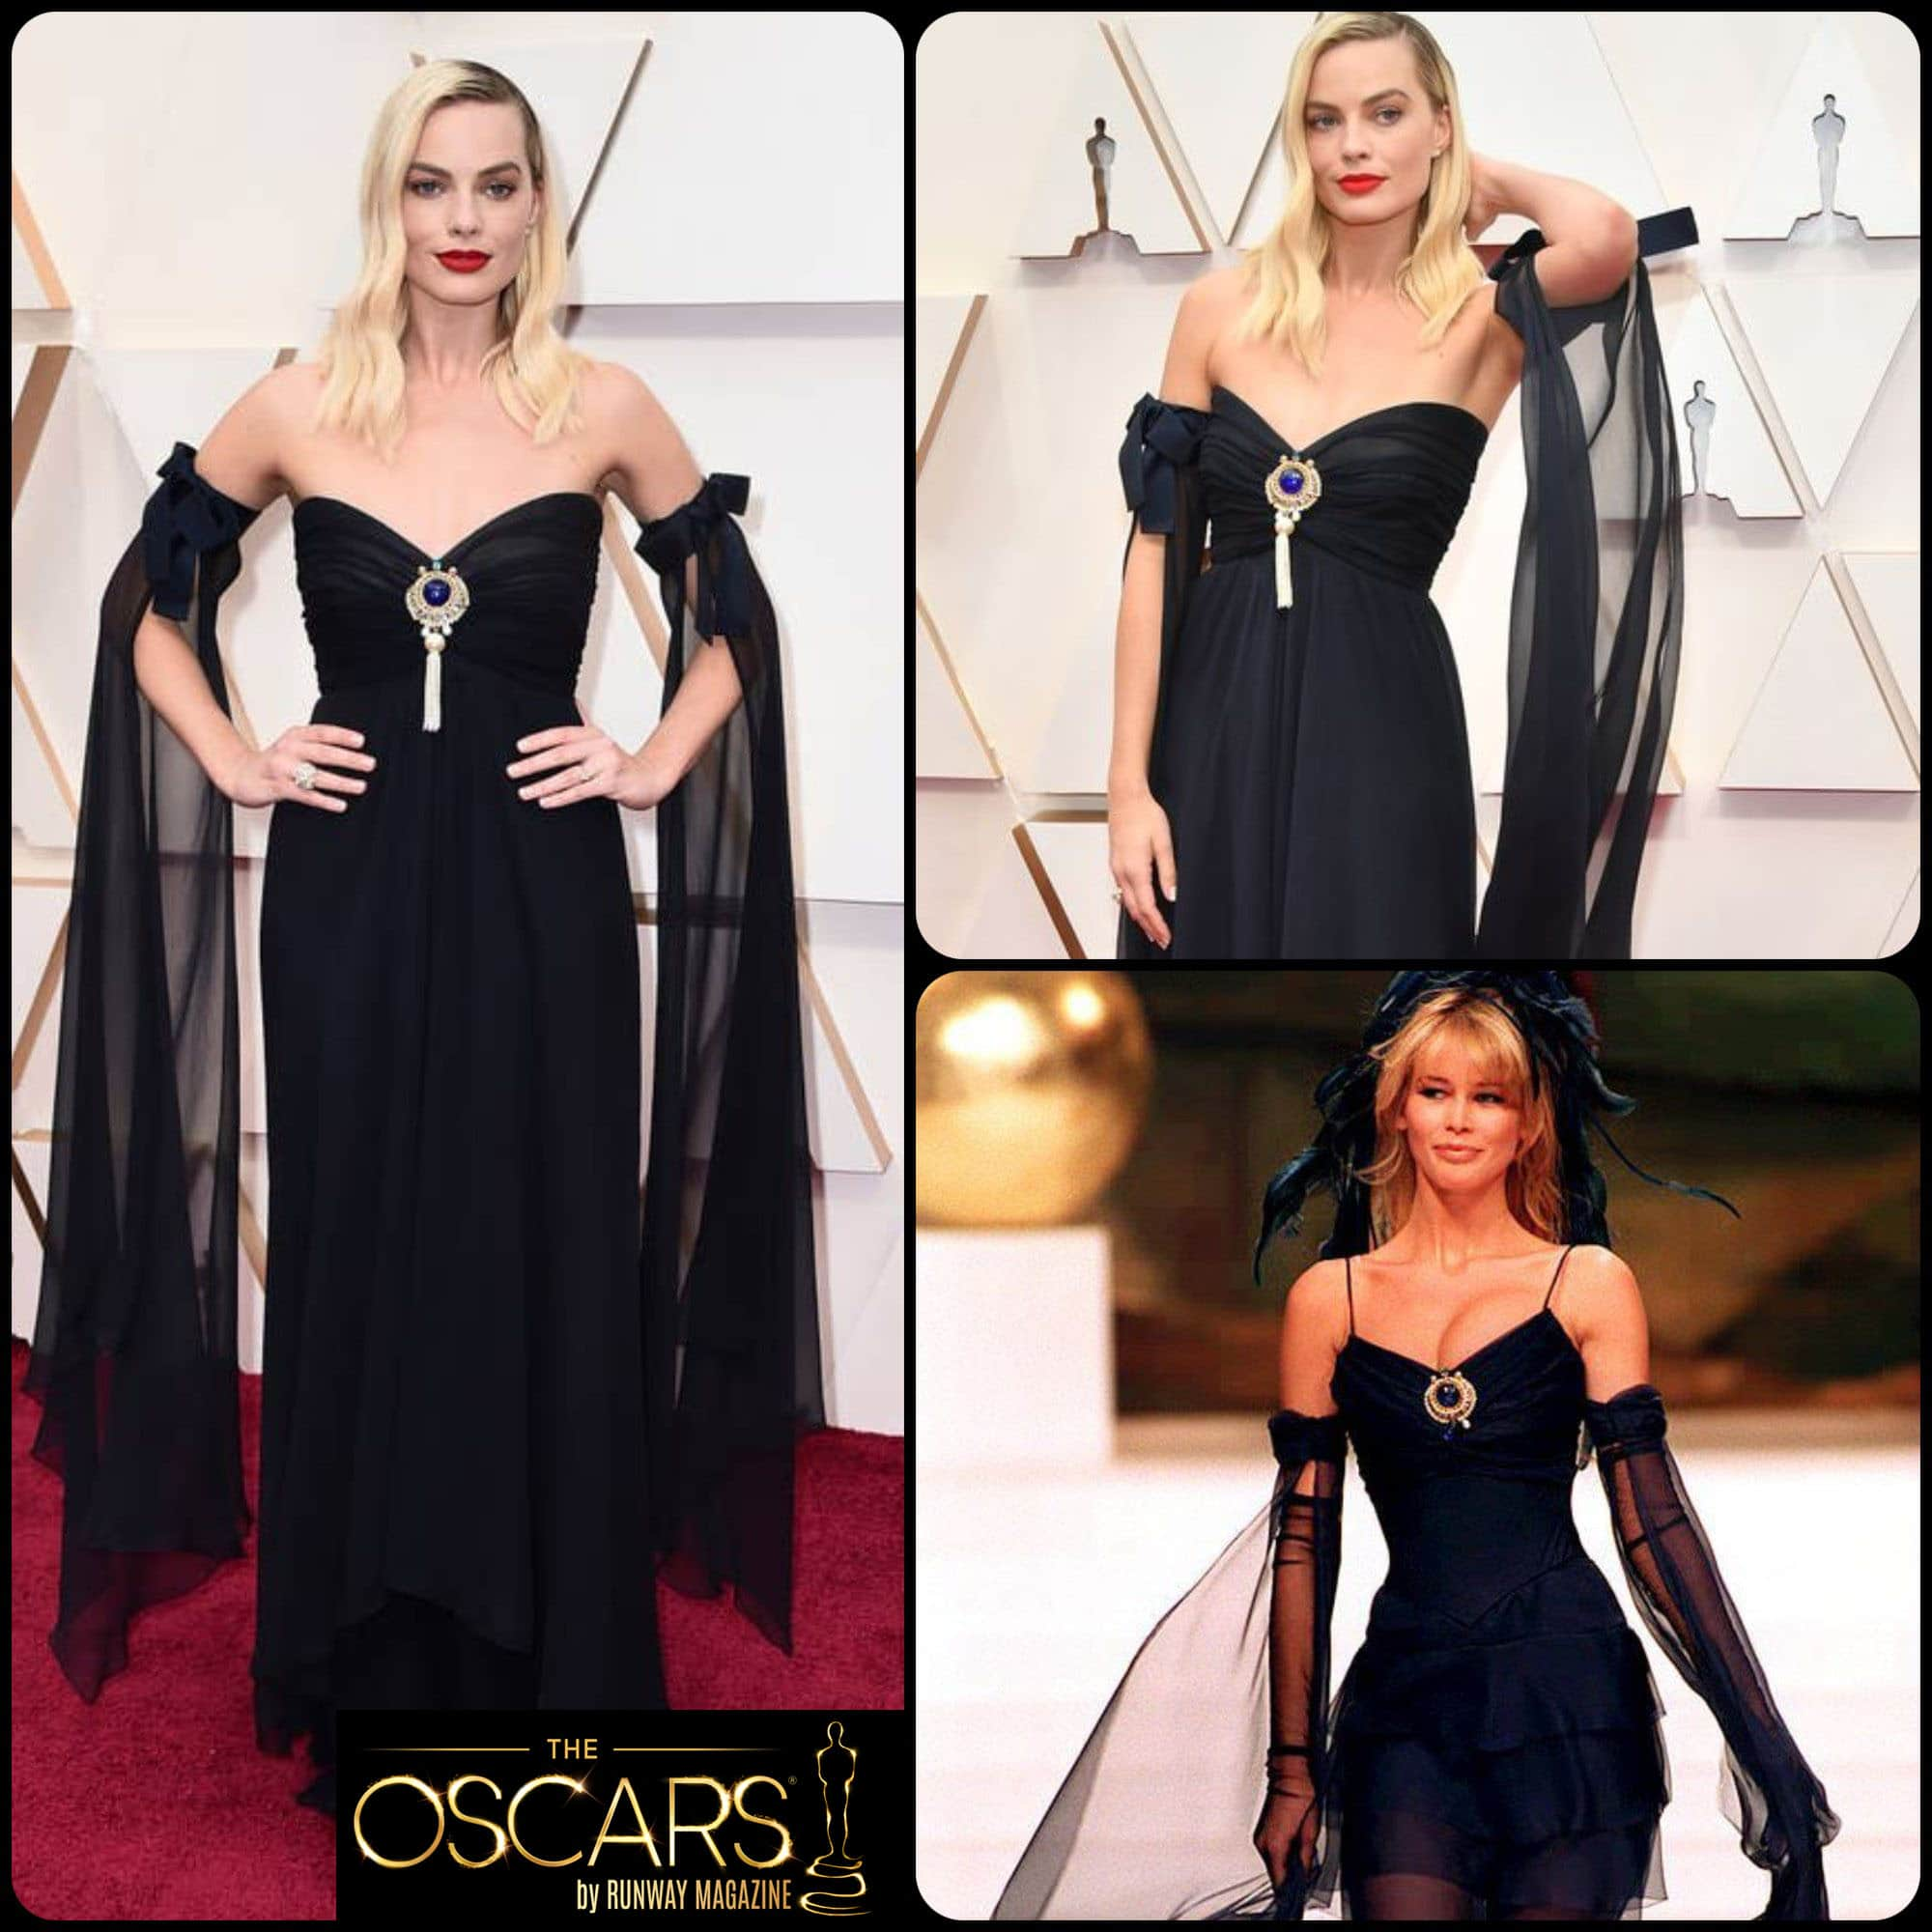 Margot Robbie in CHANEL Haute Couture Spring-Summer 1994 at the 2020 Oscars by RUNWAY MAGAZINE